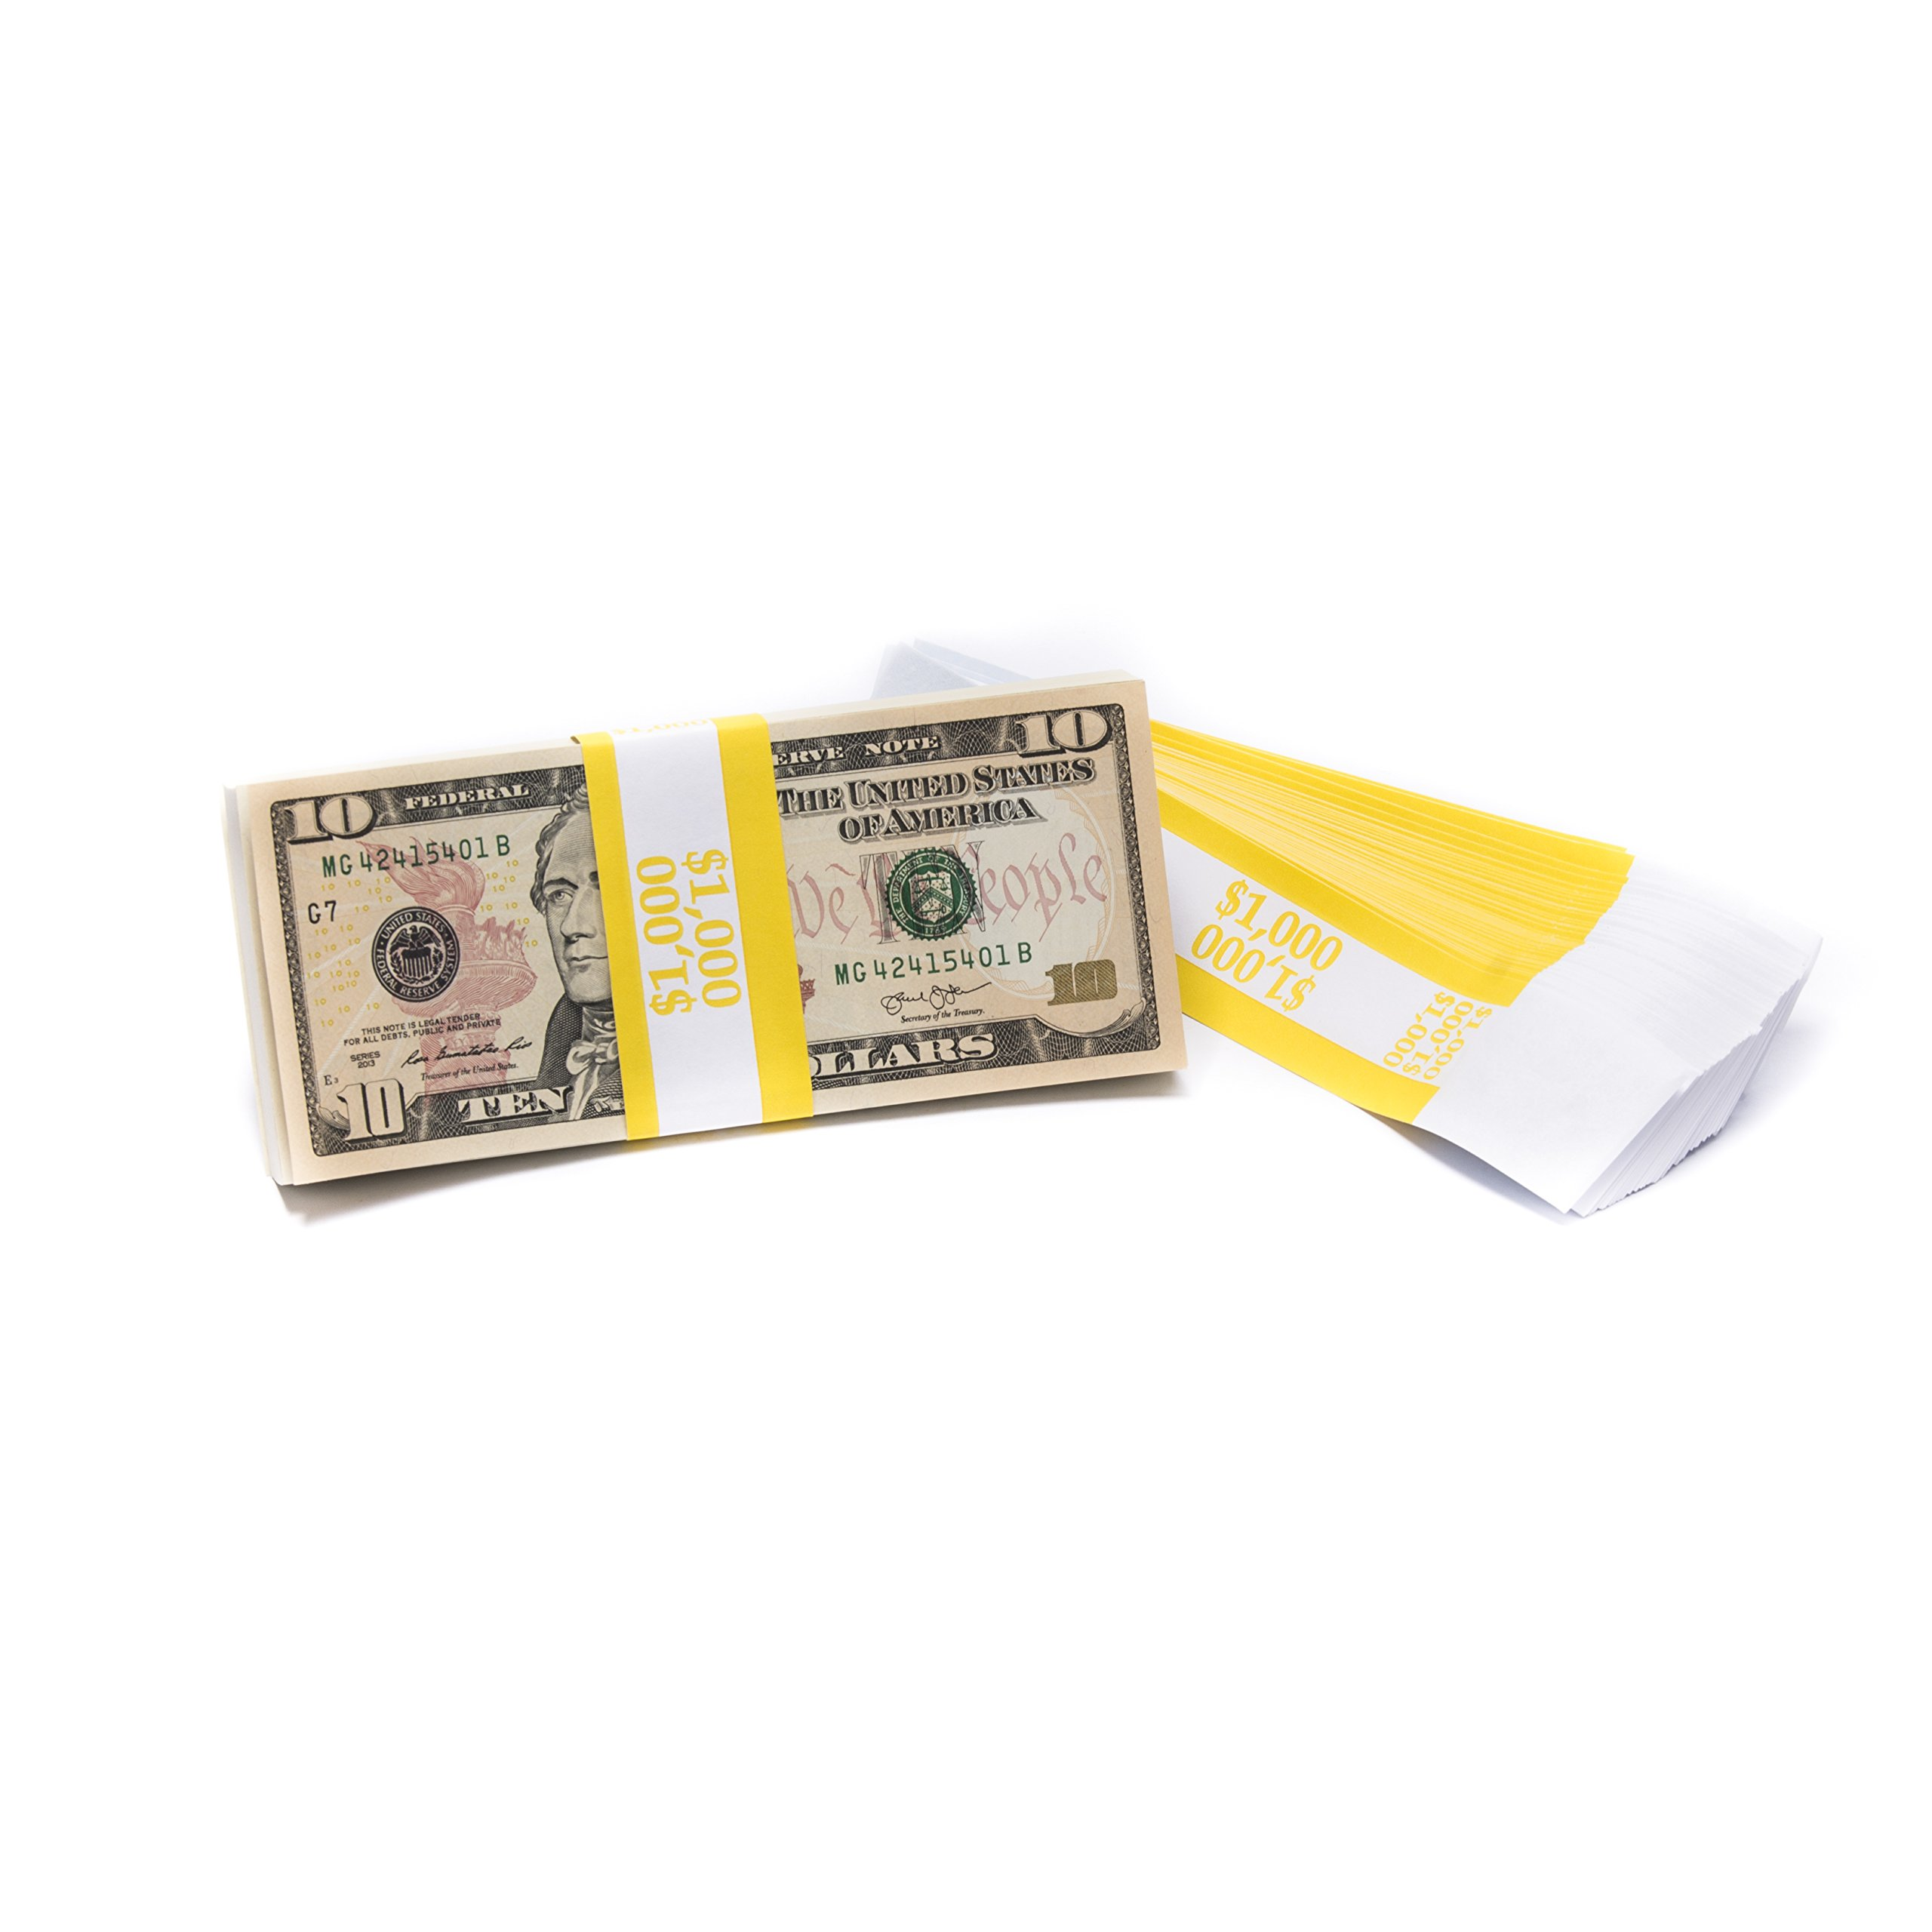 Barred ABA $1,000 Currency Band Bundles (5,000 Bands) by Carousel Checks Inc.